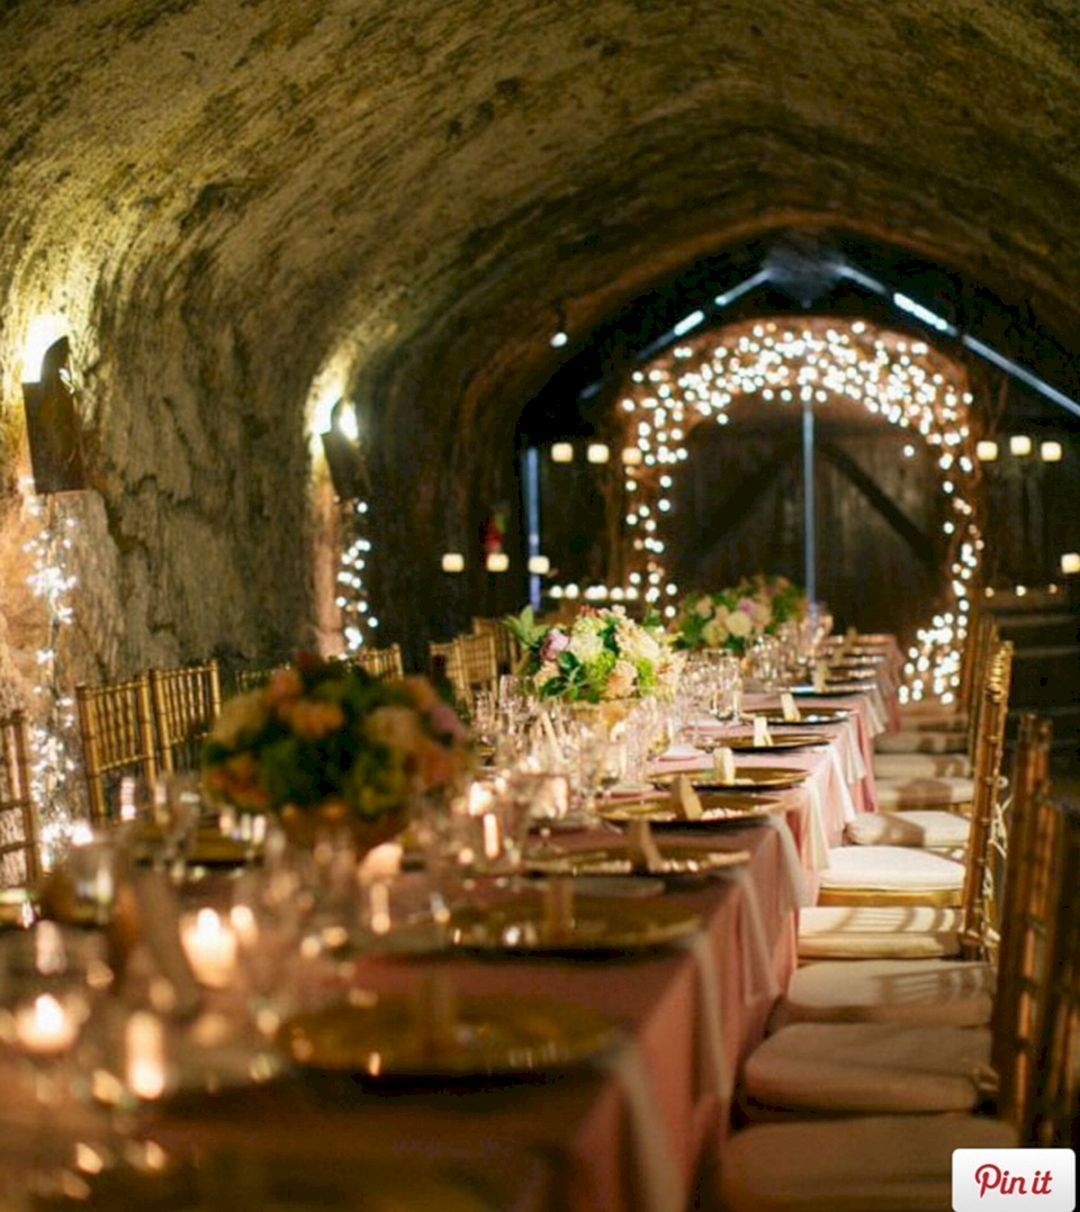 Unique Wedding Reception Ideas: 25 Unique Wedding Venue Design Ideas For Amazing Wedding